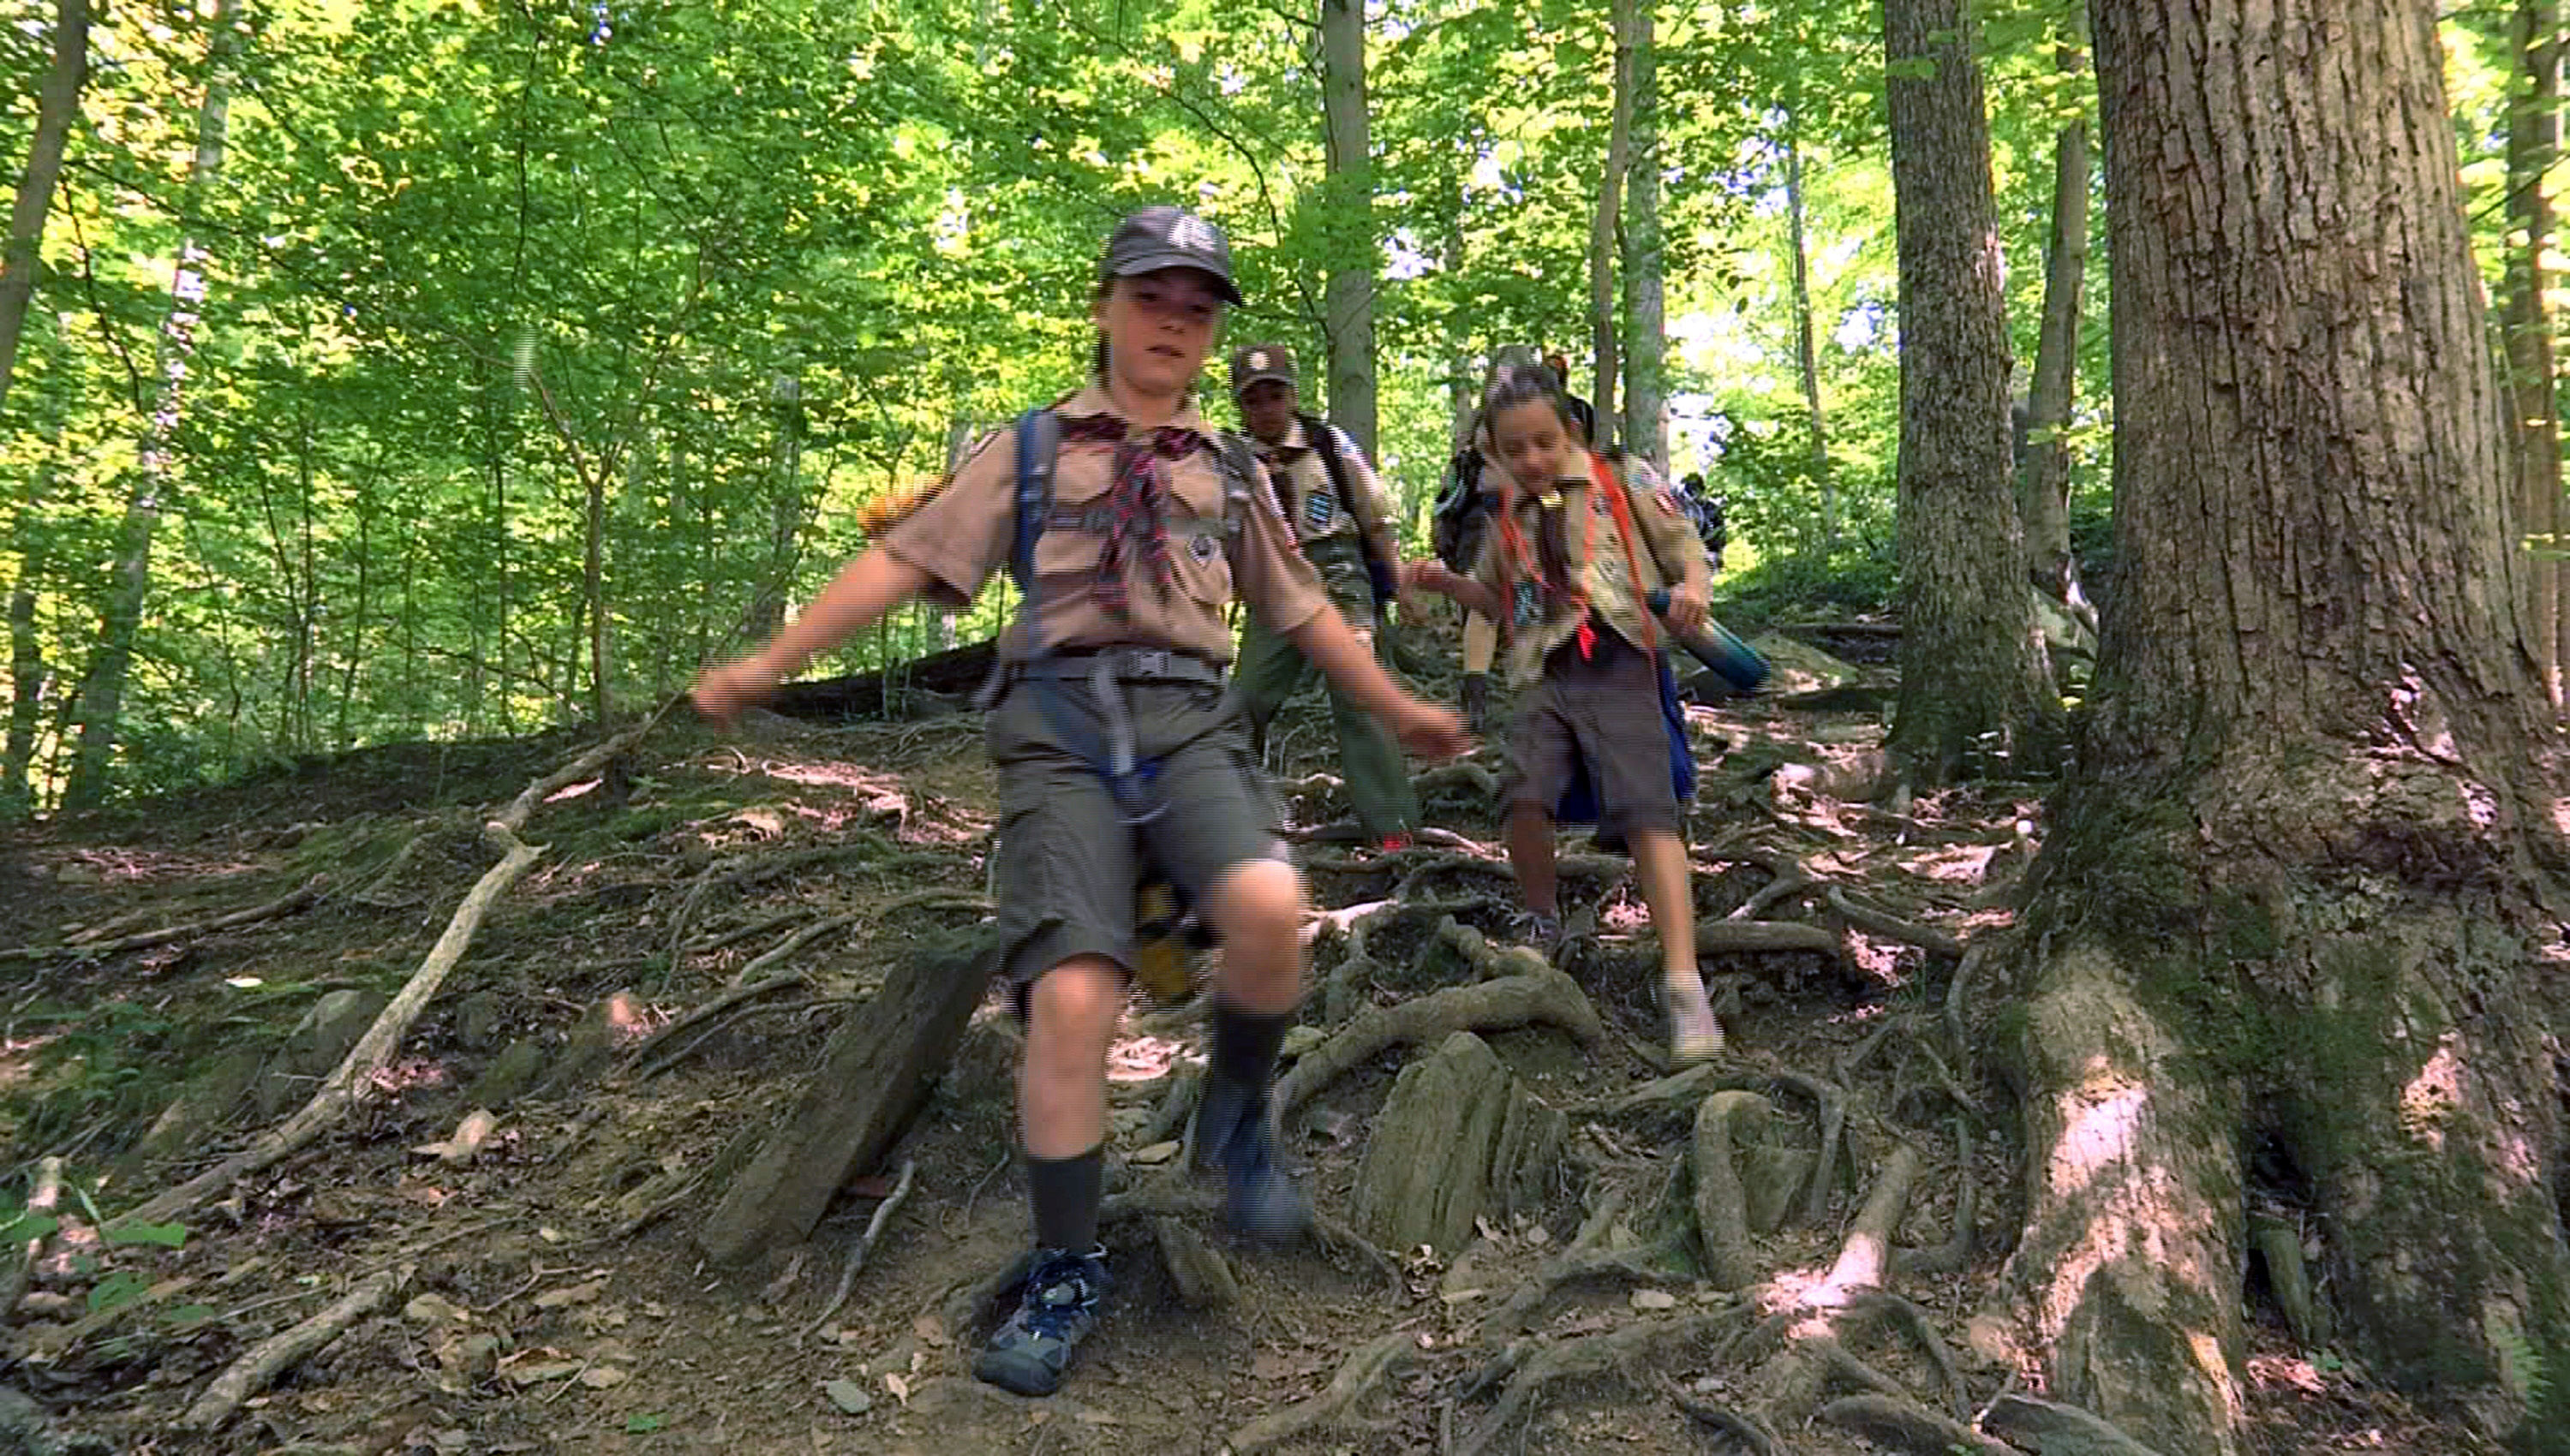 Girl Scouts sue Boy Scouts over trademark as boys welcome girls